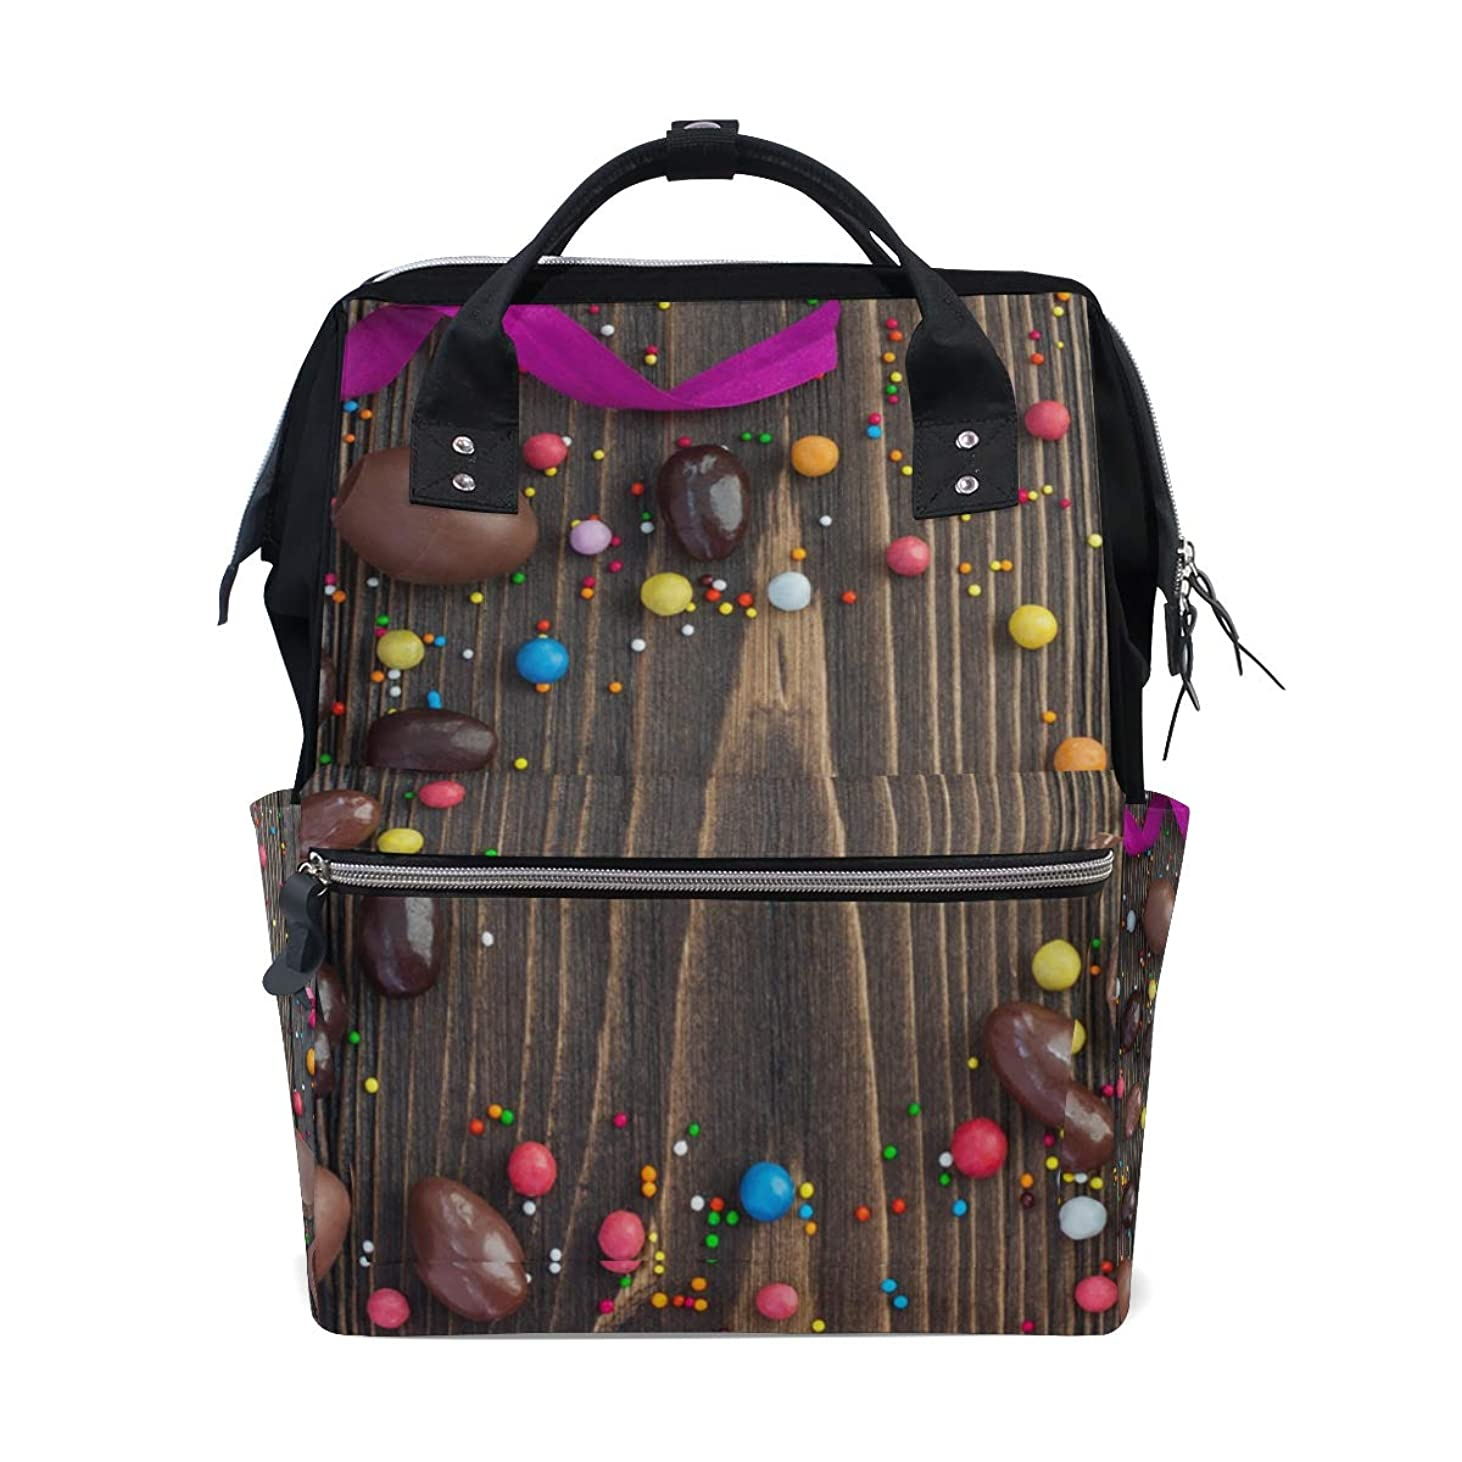 Happy Easter Chocolate Eggs School Backpack Large Capacity Mummy Bags Laptop Handbag Casual Travel Rucksack Satchel For Women Men Adult Teen Children pxhym244199